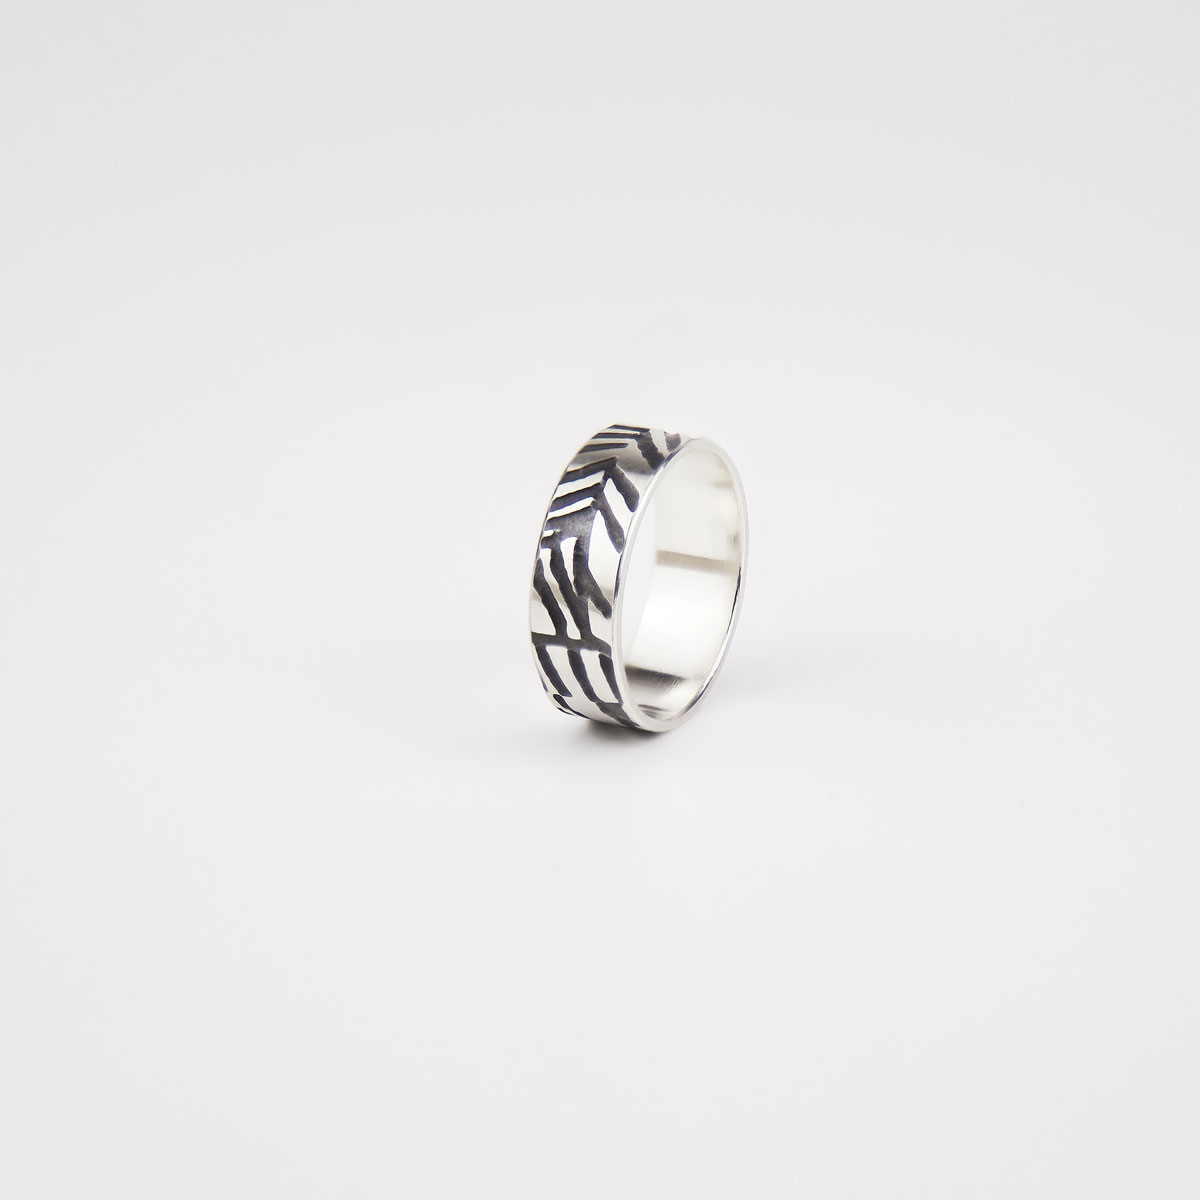 'Weave' Silver and Black Ring